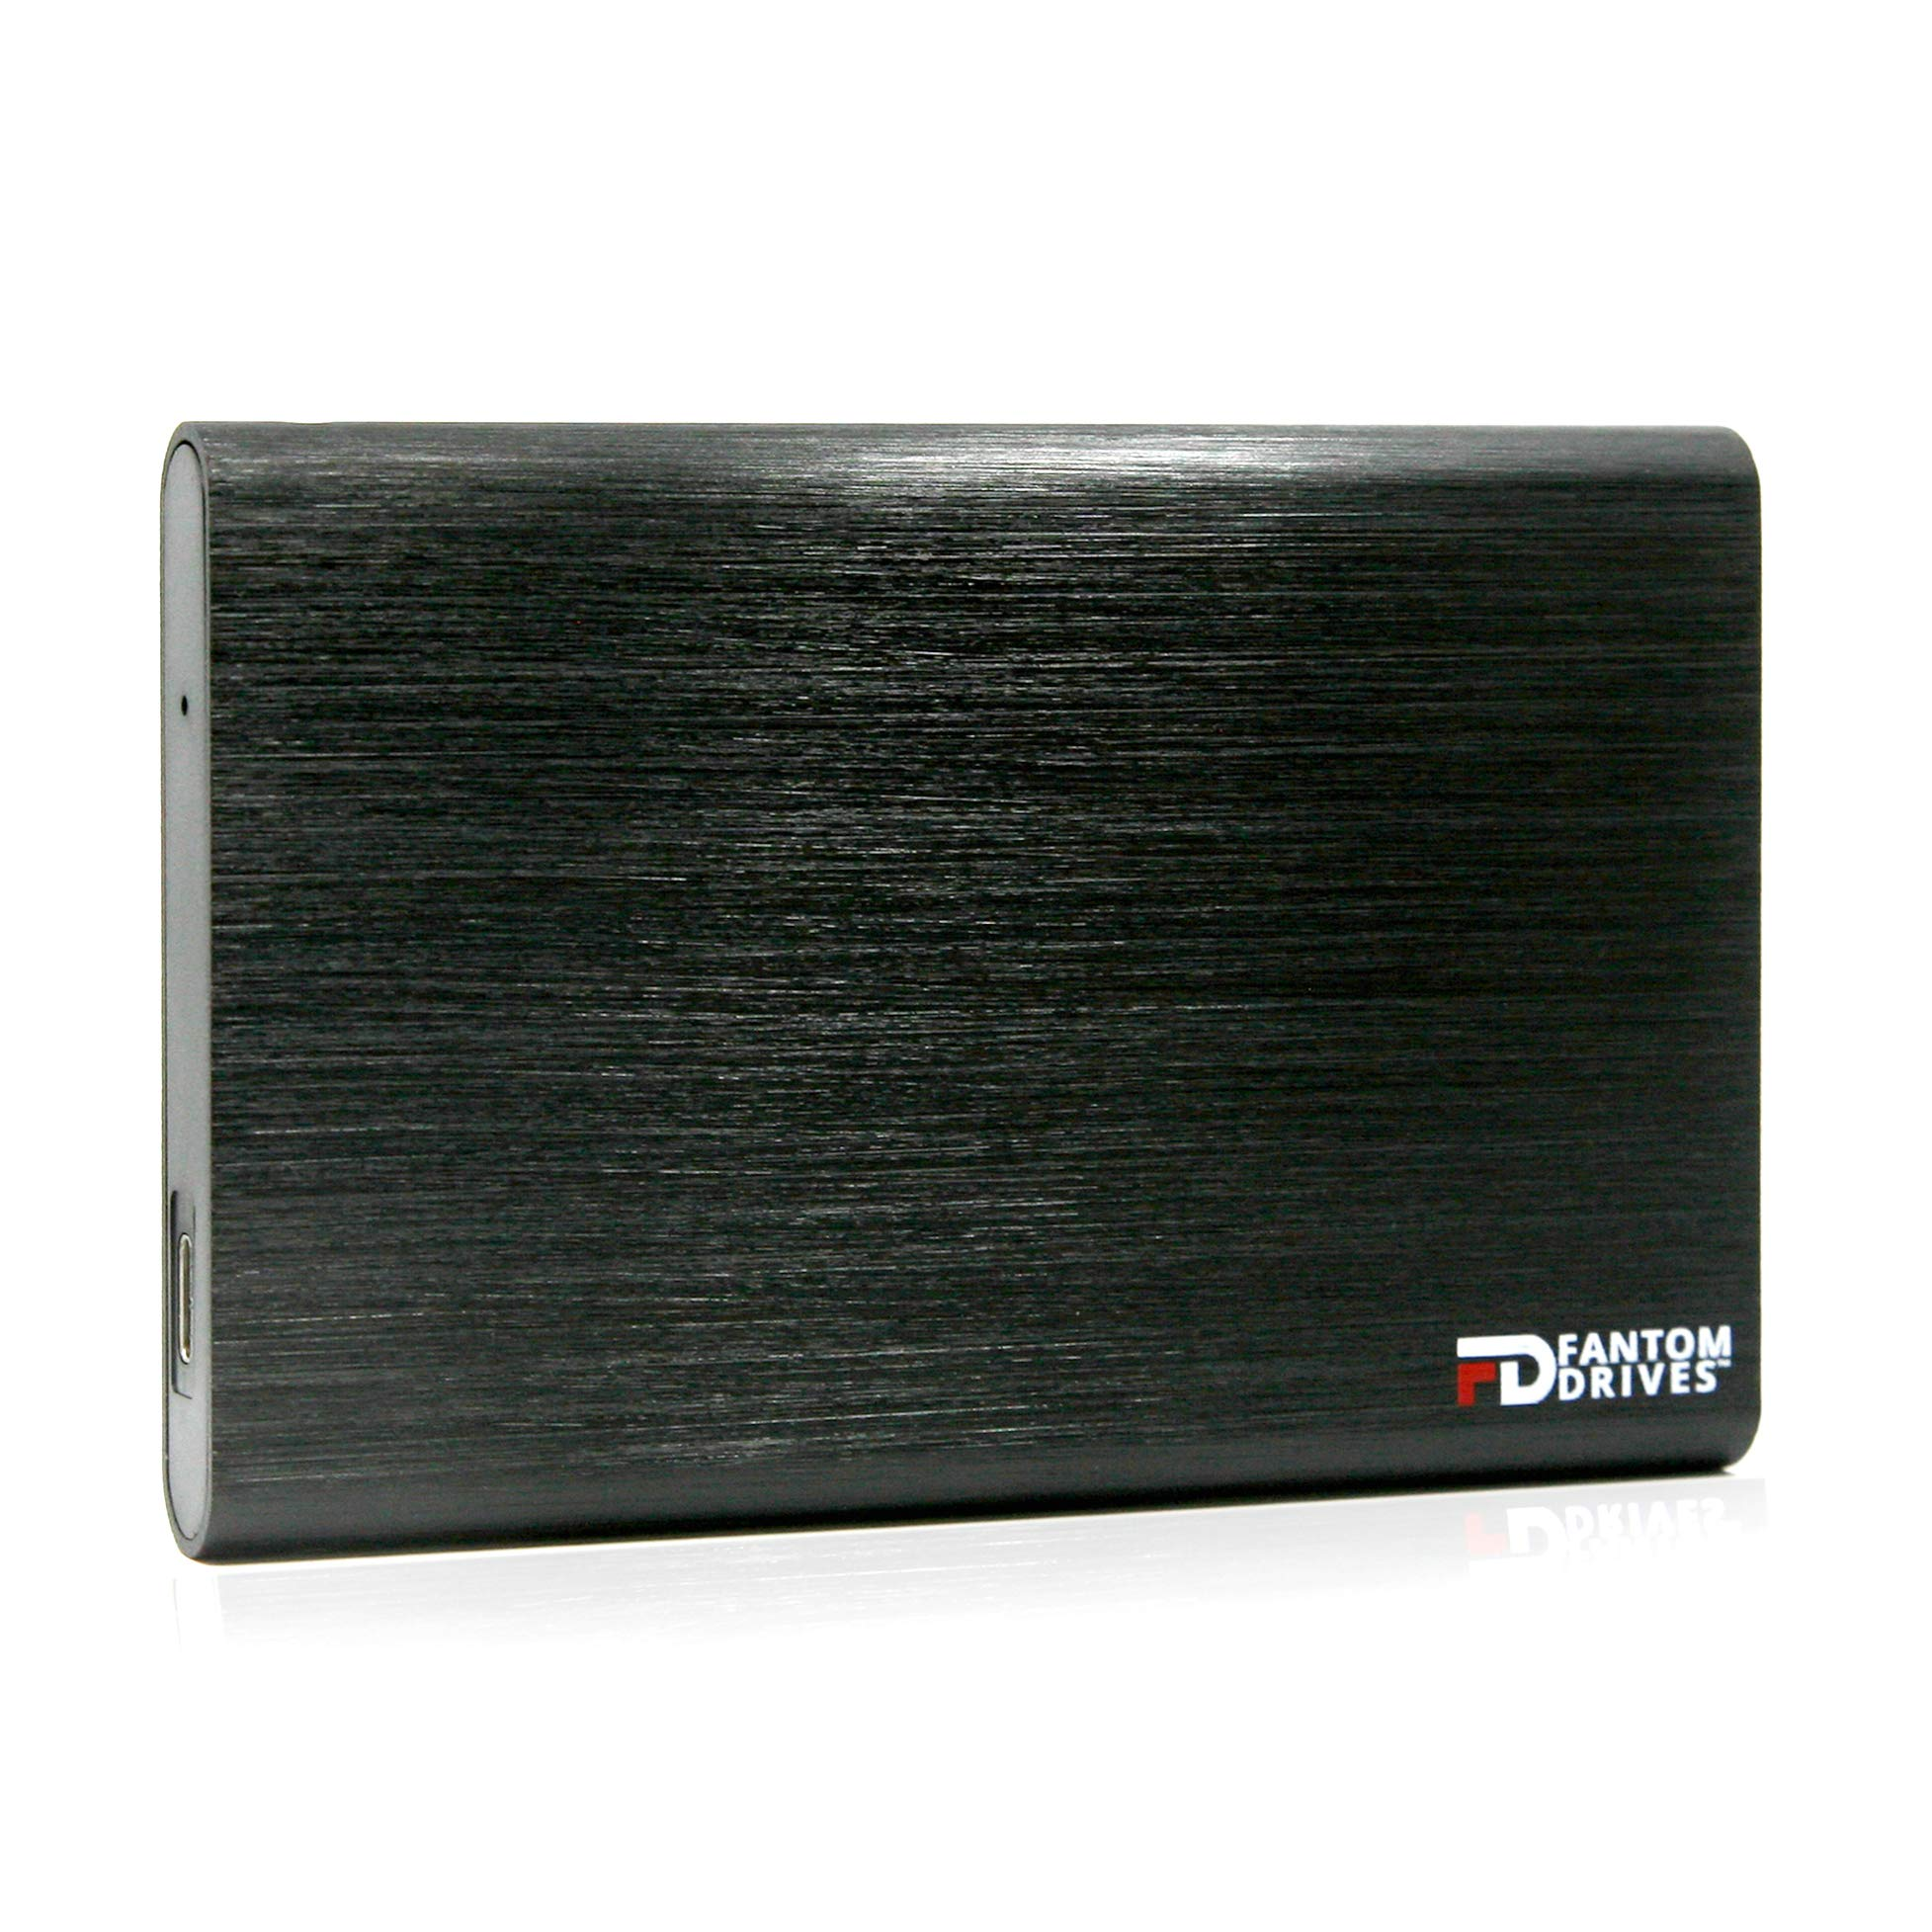 Fantom Drives External SSD 2TBB USB 3.1 Gen 2 Type-C 10Gb/s - Black - Windows - GFORCE 3.1 Portable SSD Series